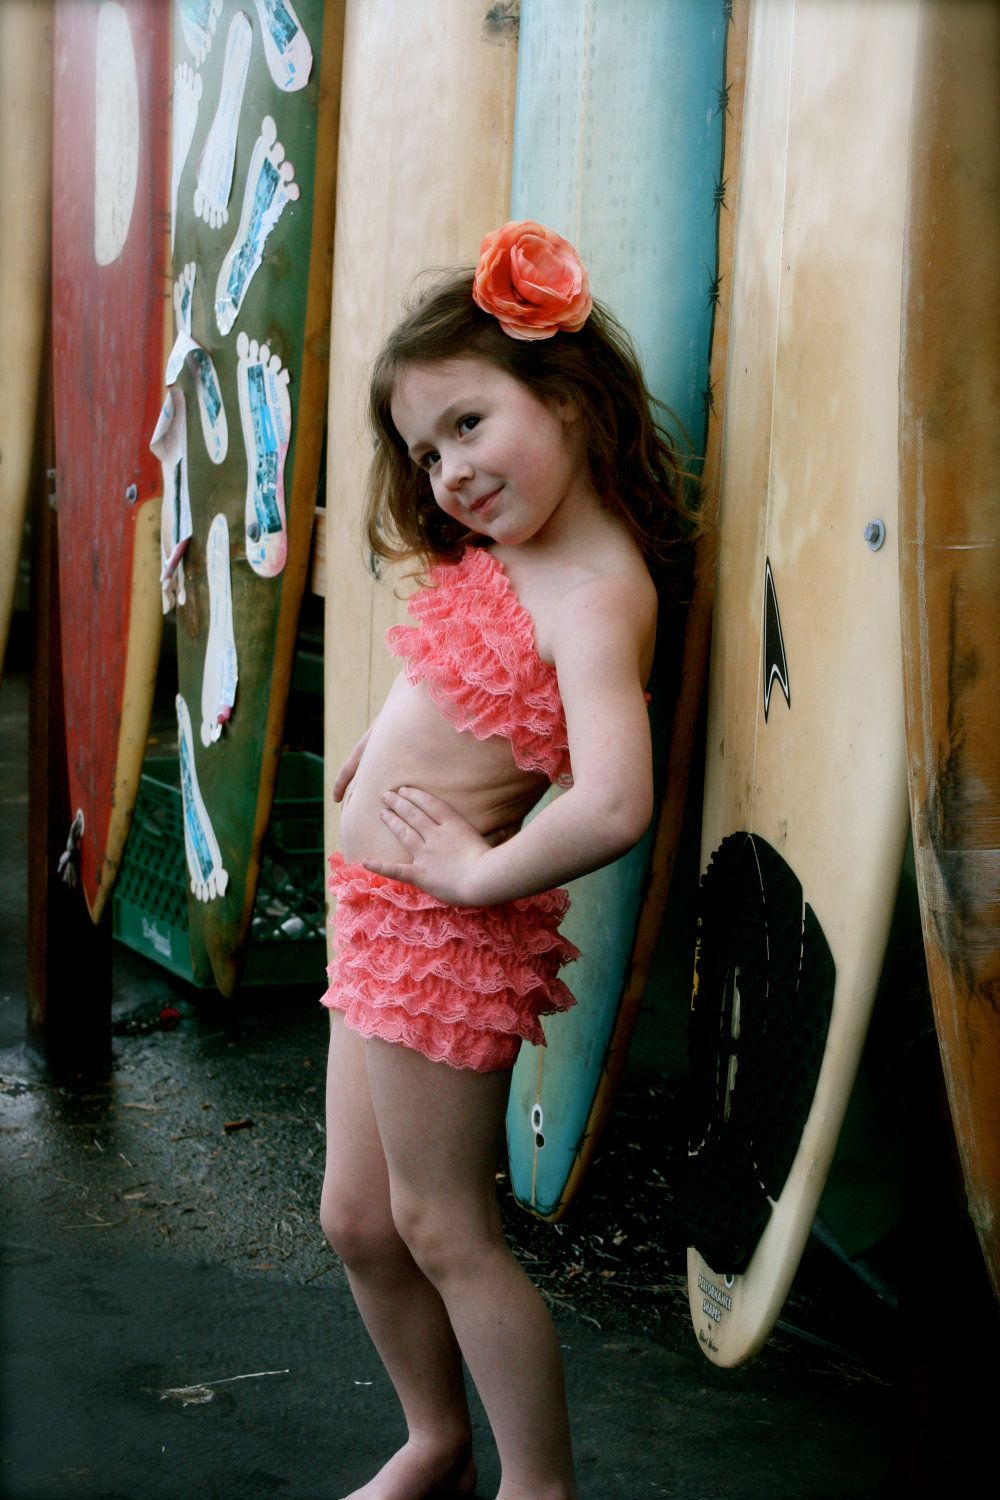 With you short chubby young girl pics excellent idea